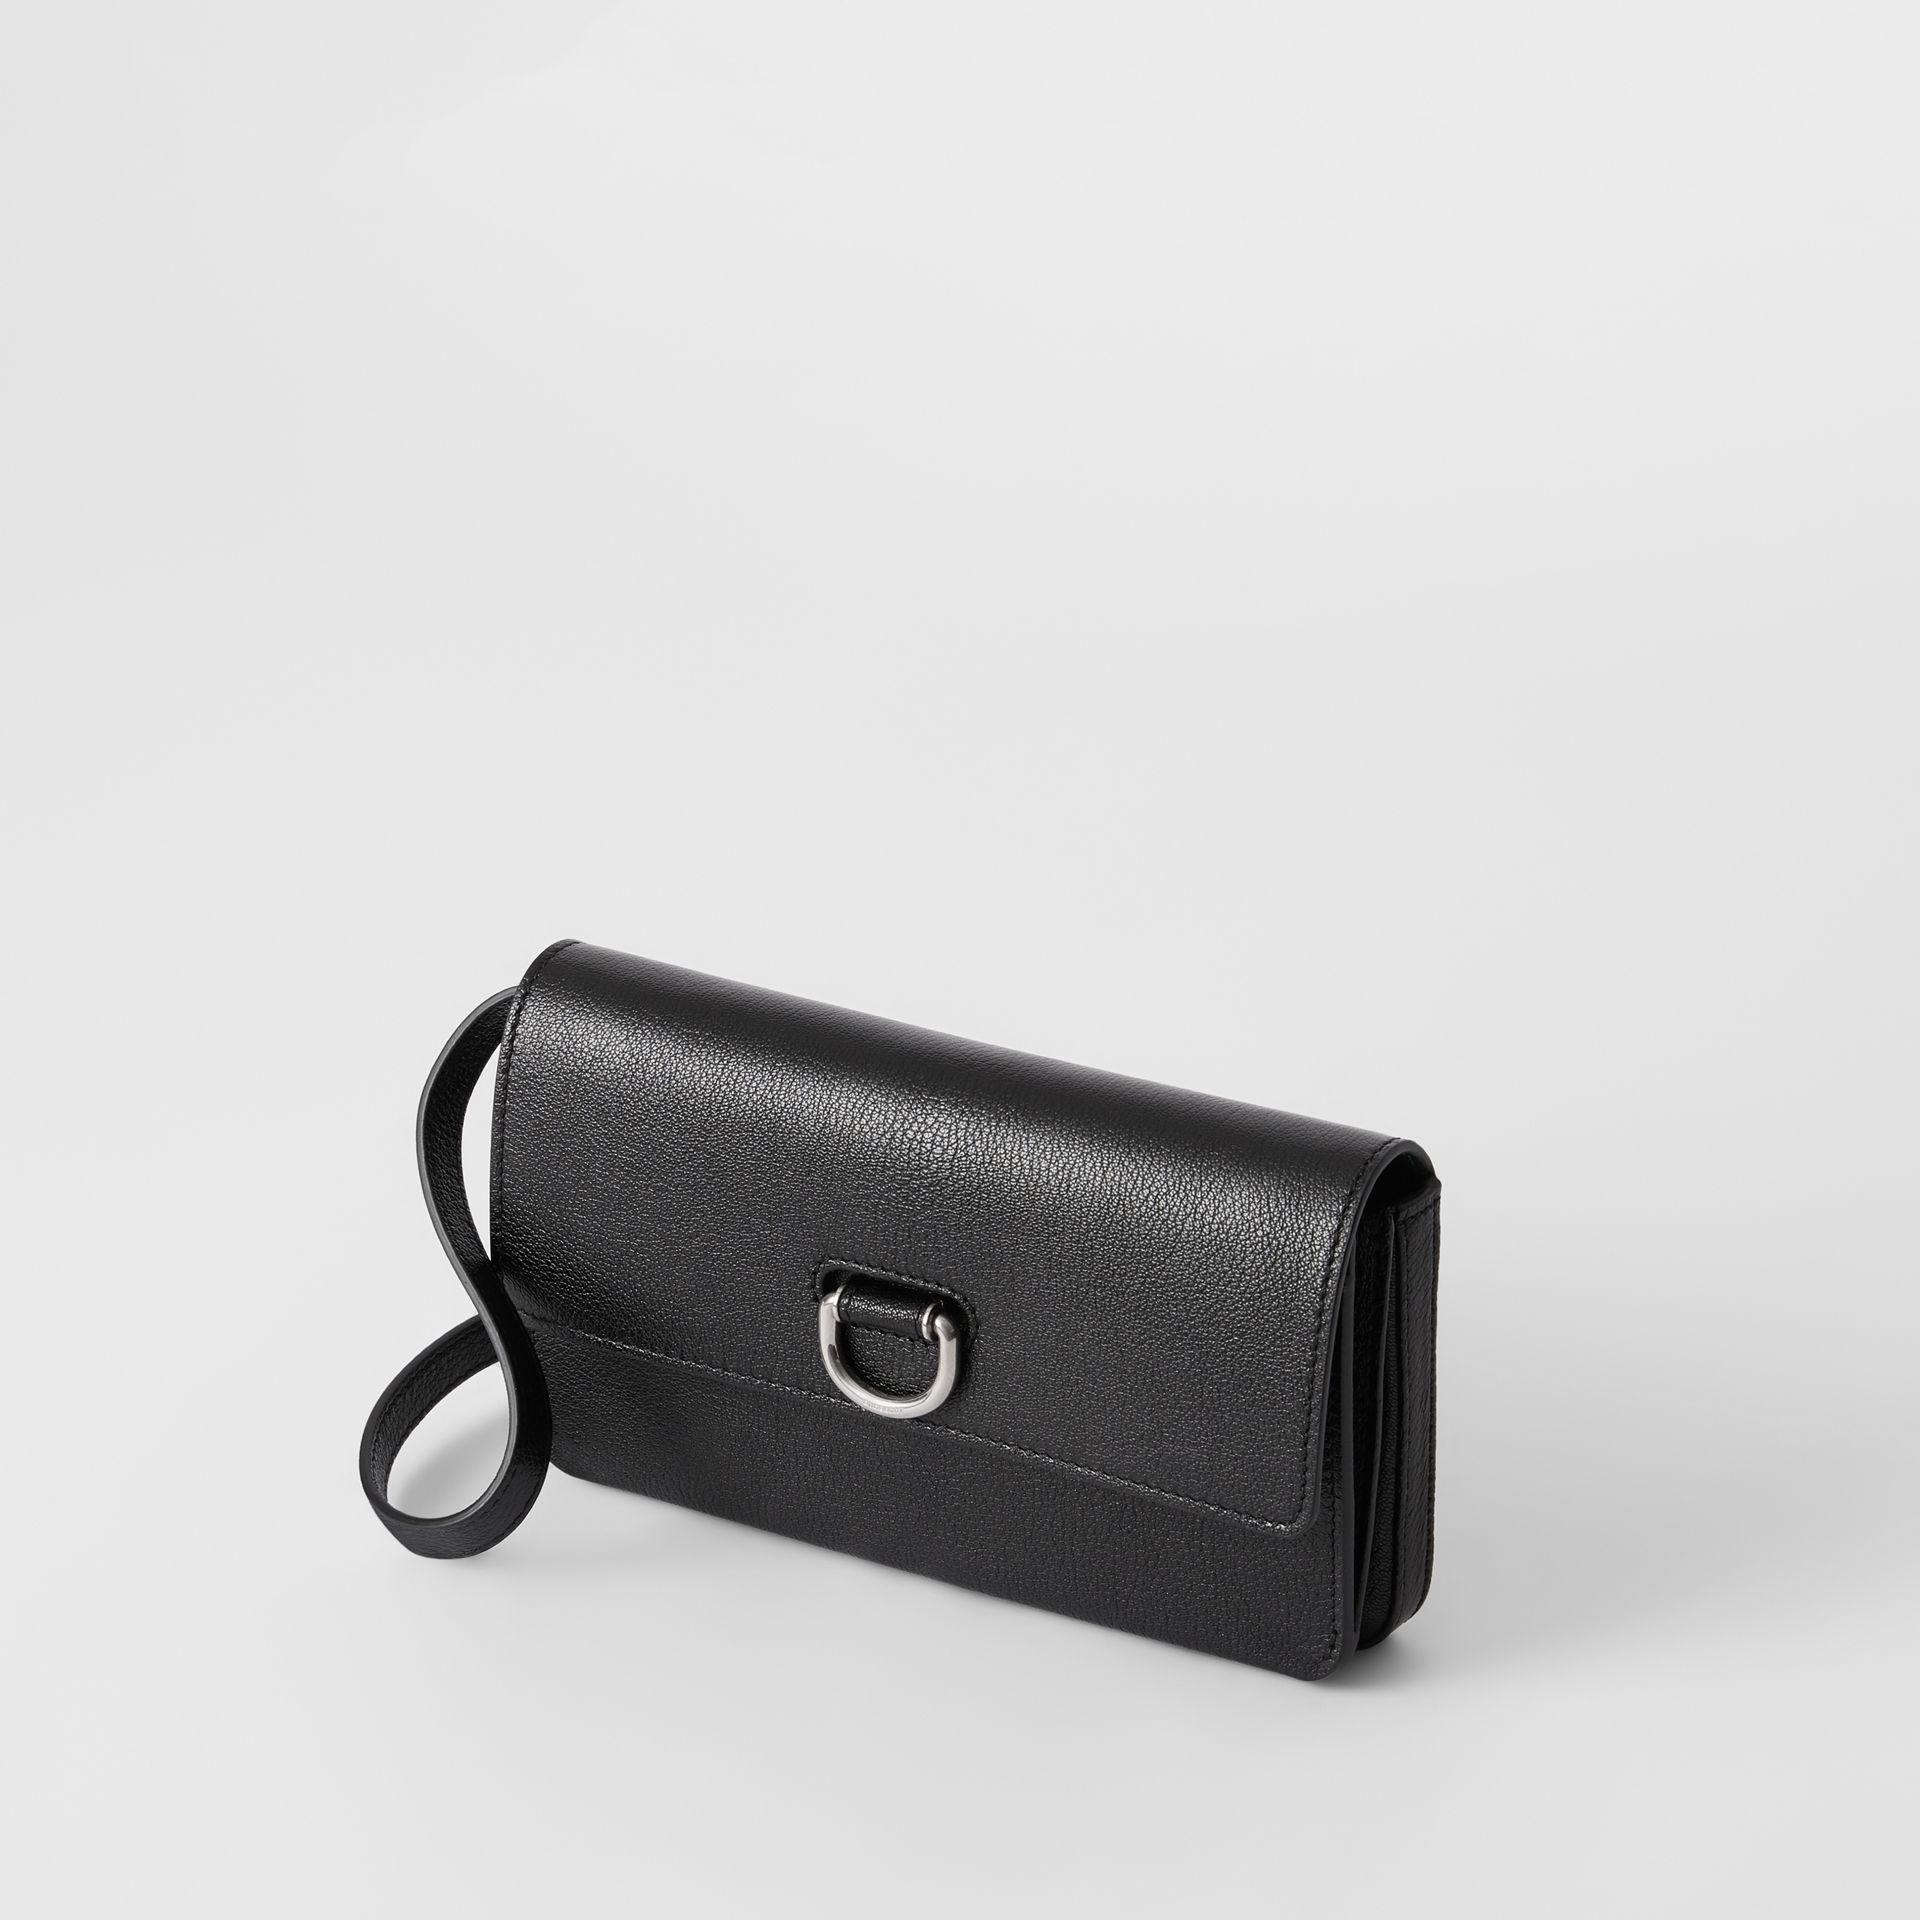 D-ring Leather Wallet with Detachable Strap in Black - Women | Burberry - gallery image 4